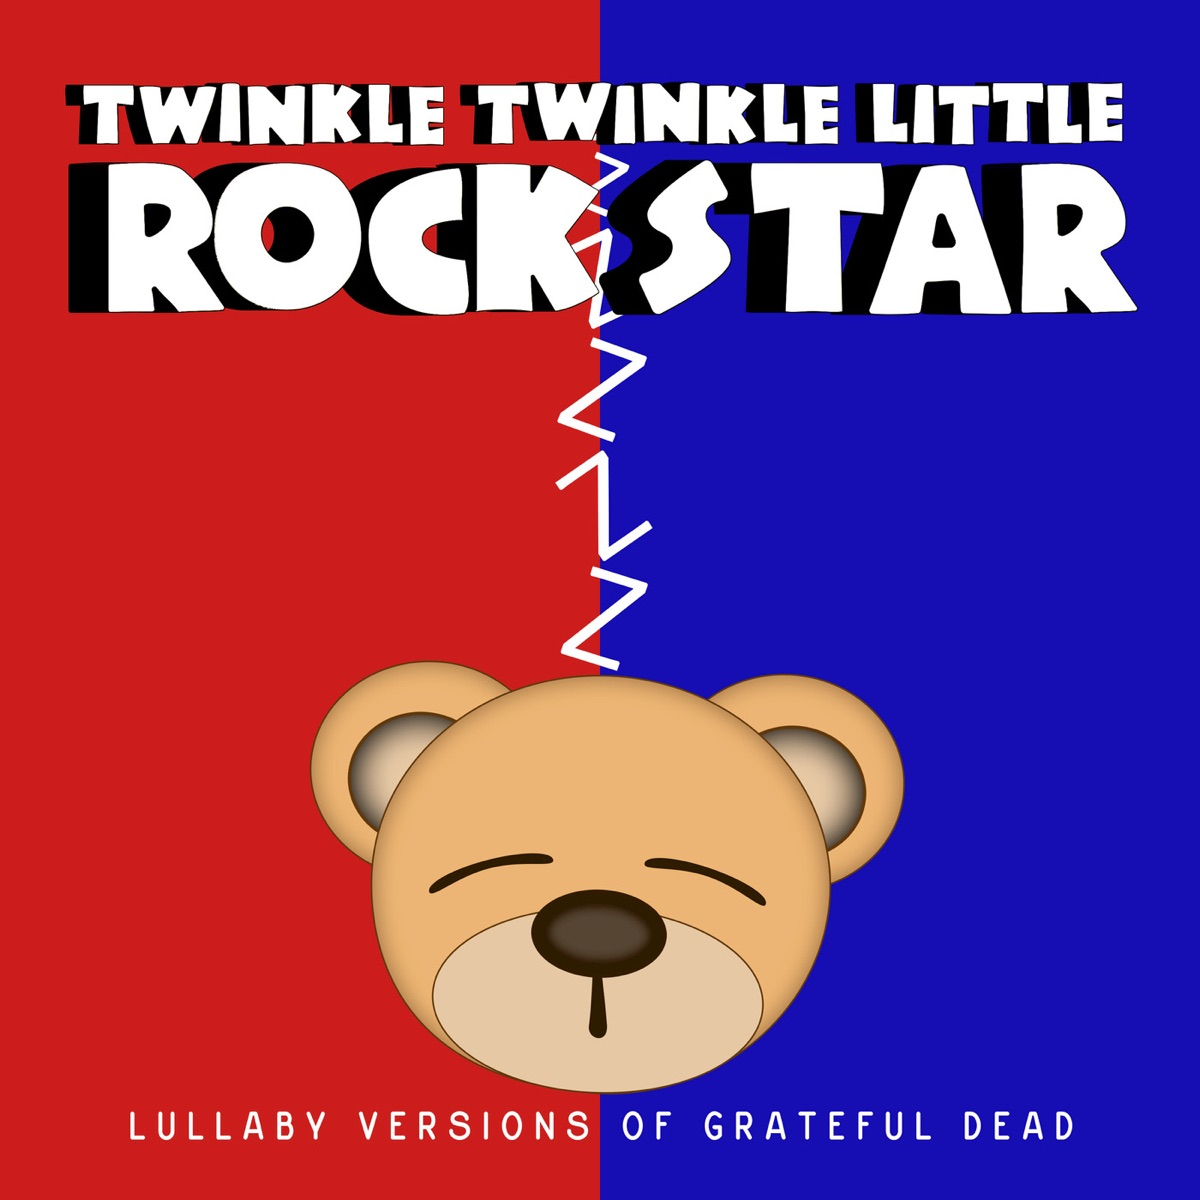 Lullaby Versions of Grateful Dead Twinkle Twinkle Little Rock Star CD cover